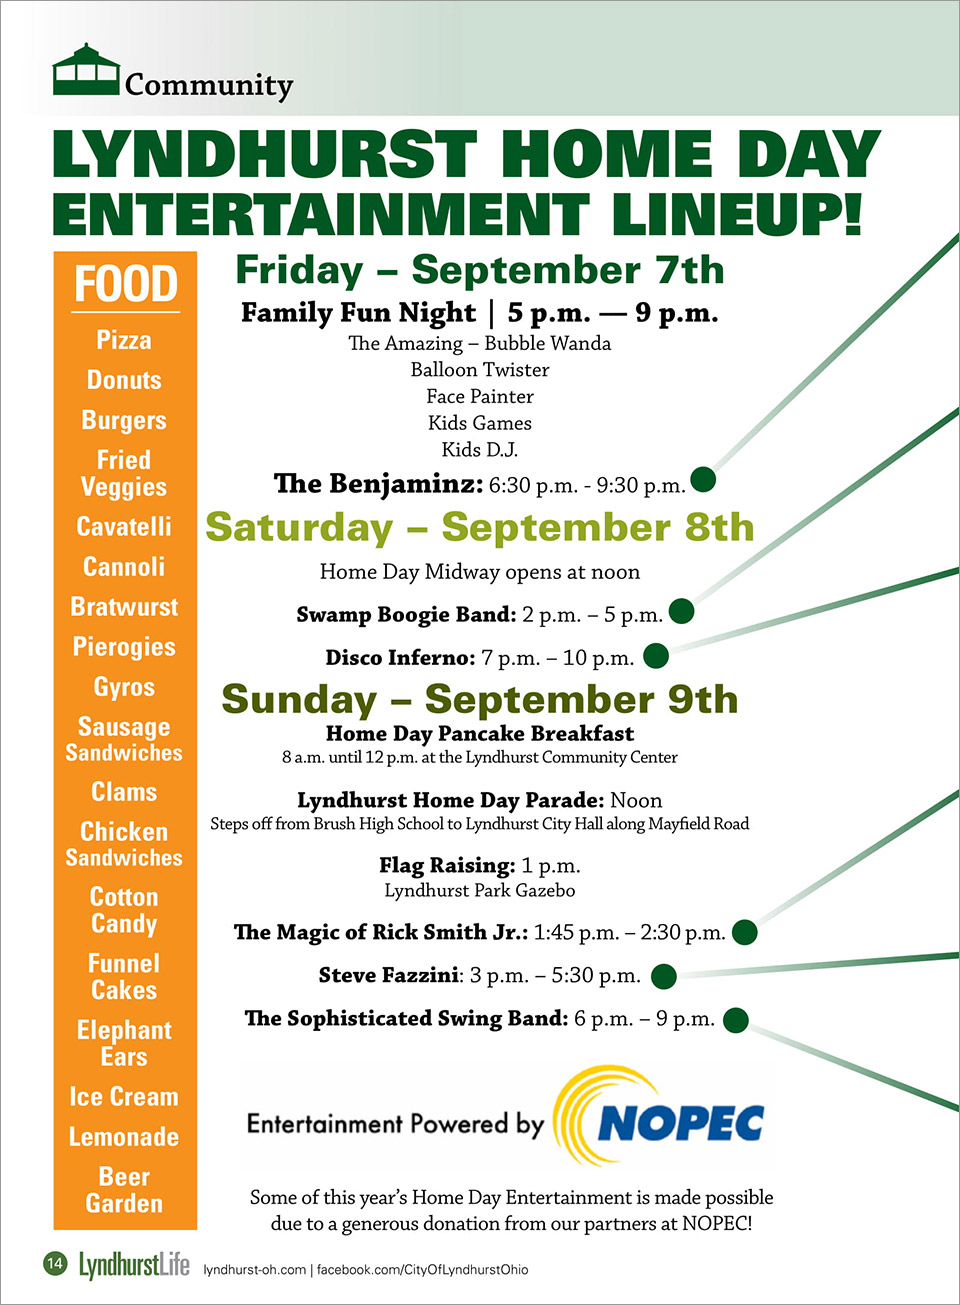 2018 Lyndhurst Home Day Celebration - Entertainment Lineup! - September 7th, 8th, and 9th 2018 - City of Lyndhurst, Ohio